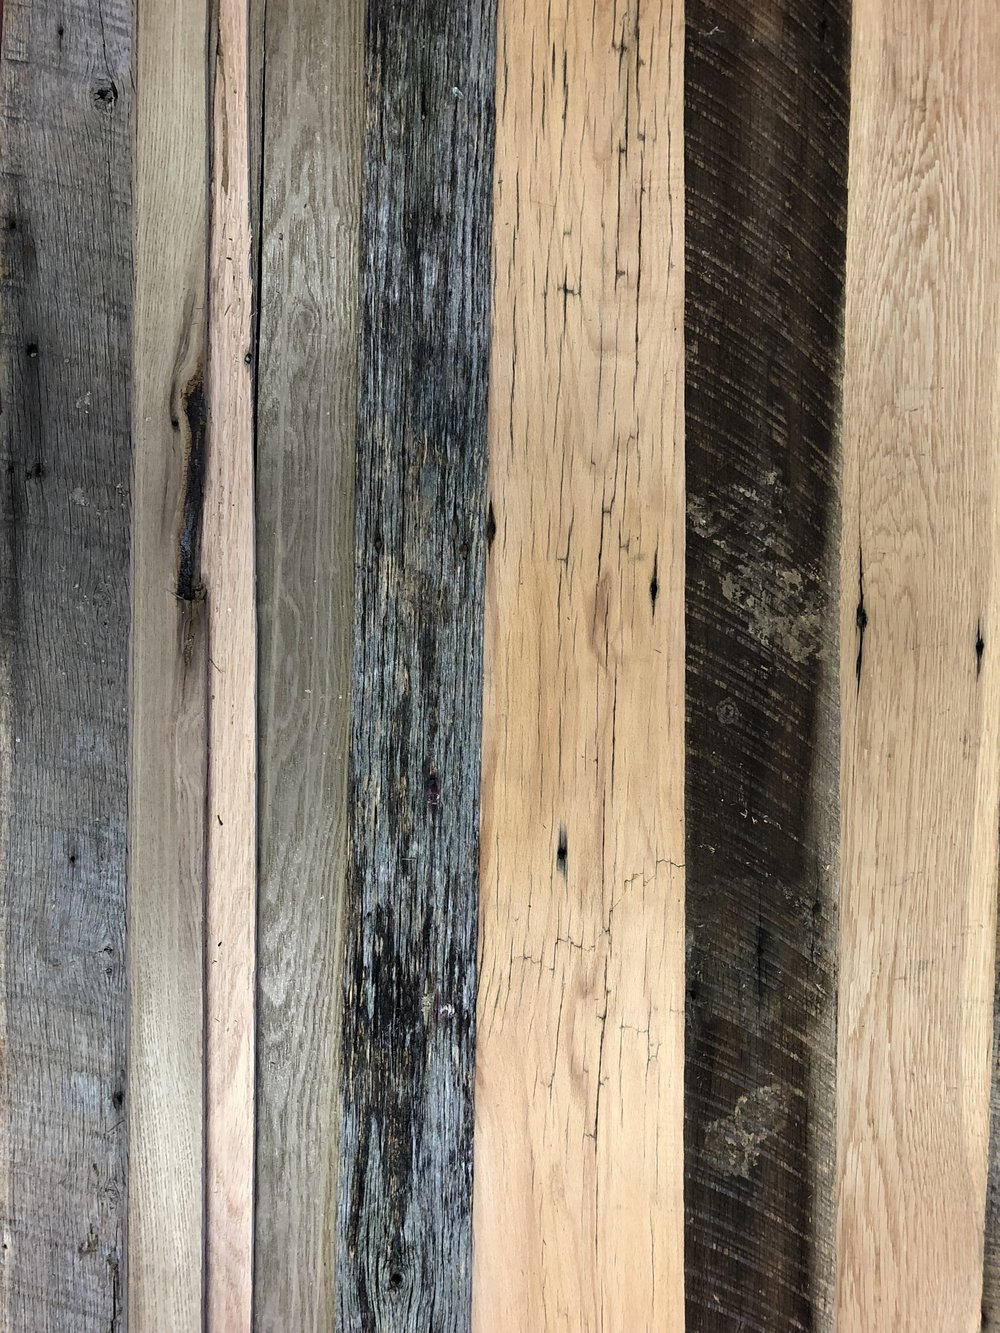 Naturally Weathered Thin Barn Wood Siding In Grays Browns And Blacks